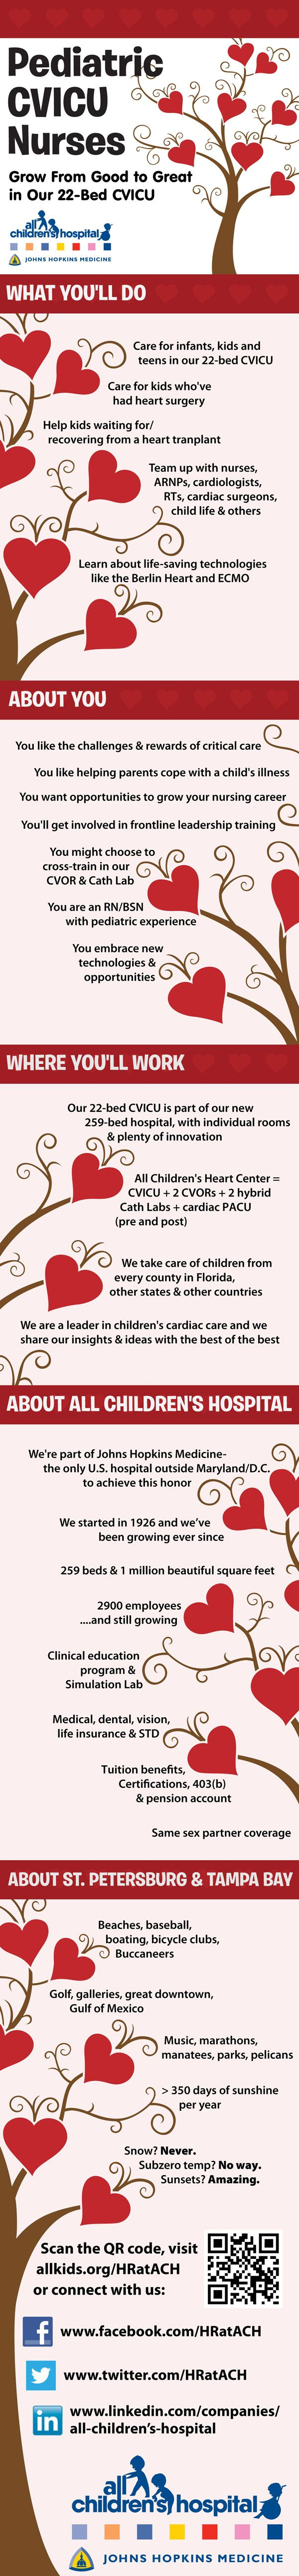 Pediatric CVICU Nurses at All Children's Hospital - Grow from Good to Great in our 22-Bed CVICU. Learn more about open positions. All Children's is a member of Johns Hopkins Medicine.